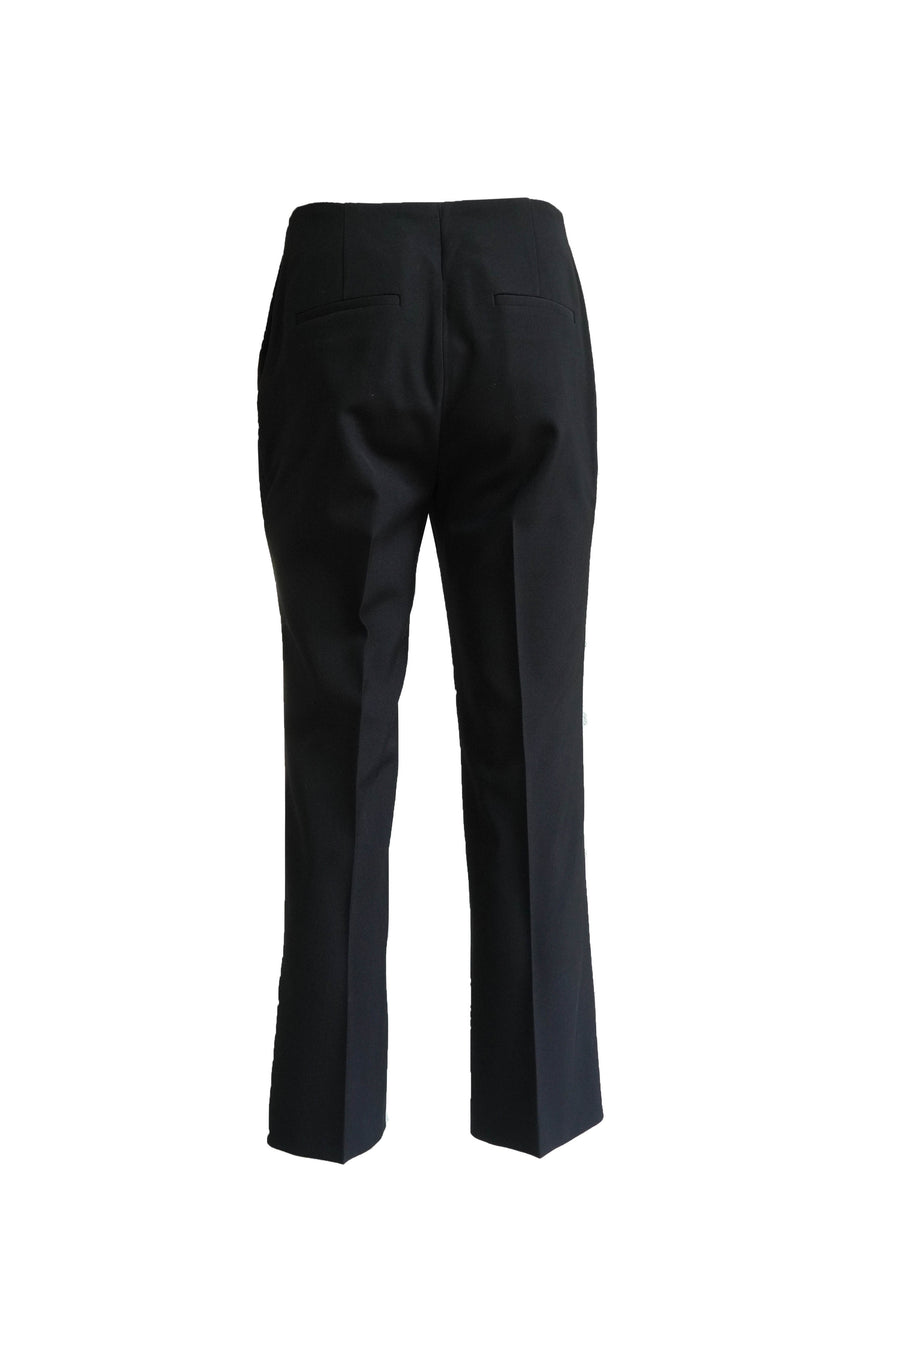 Technical Wool Suiting Crop Flare Pant in Black